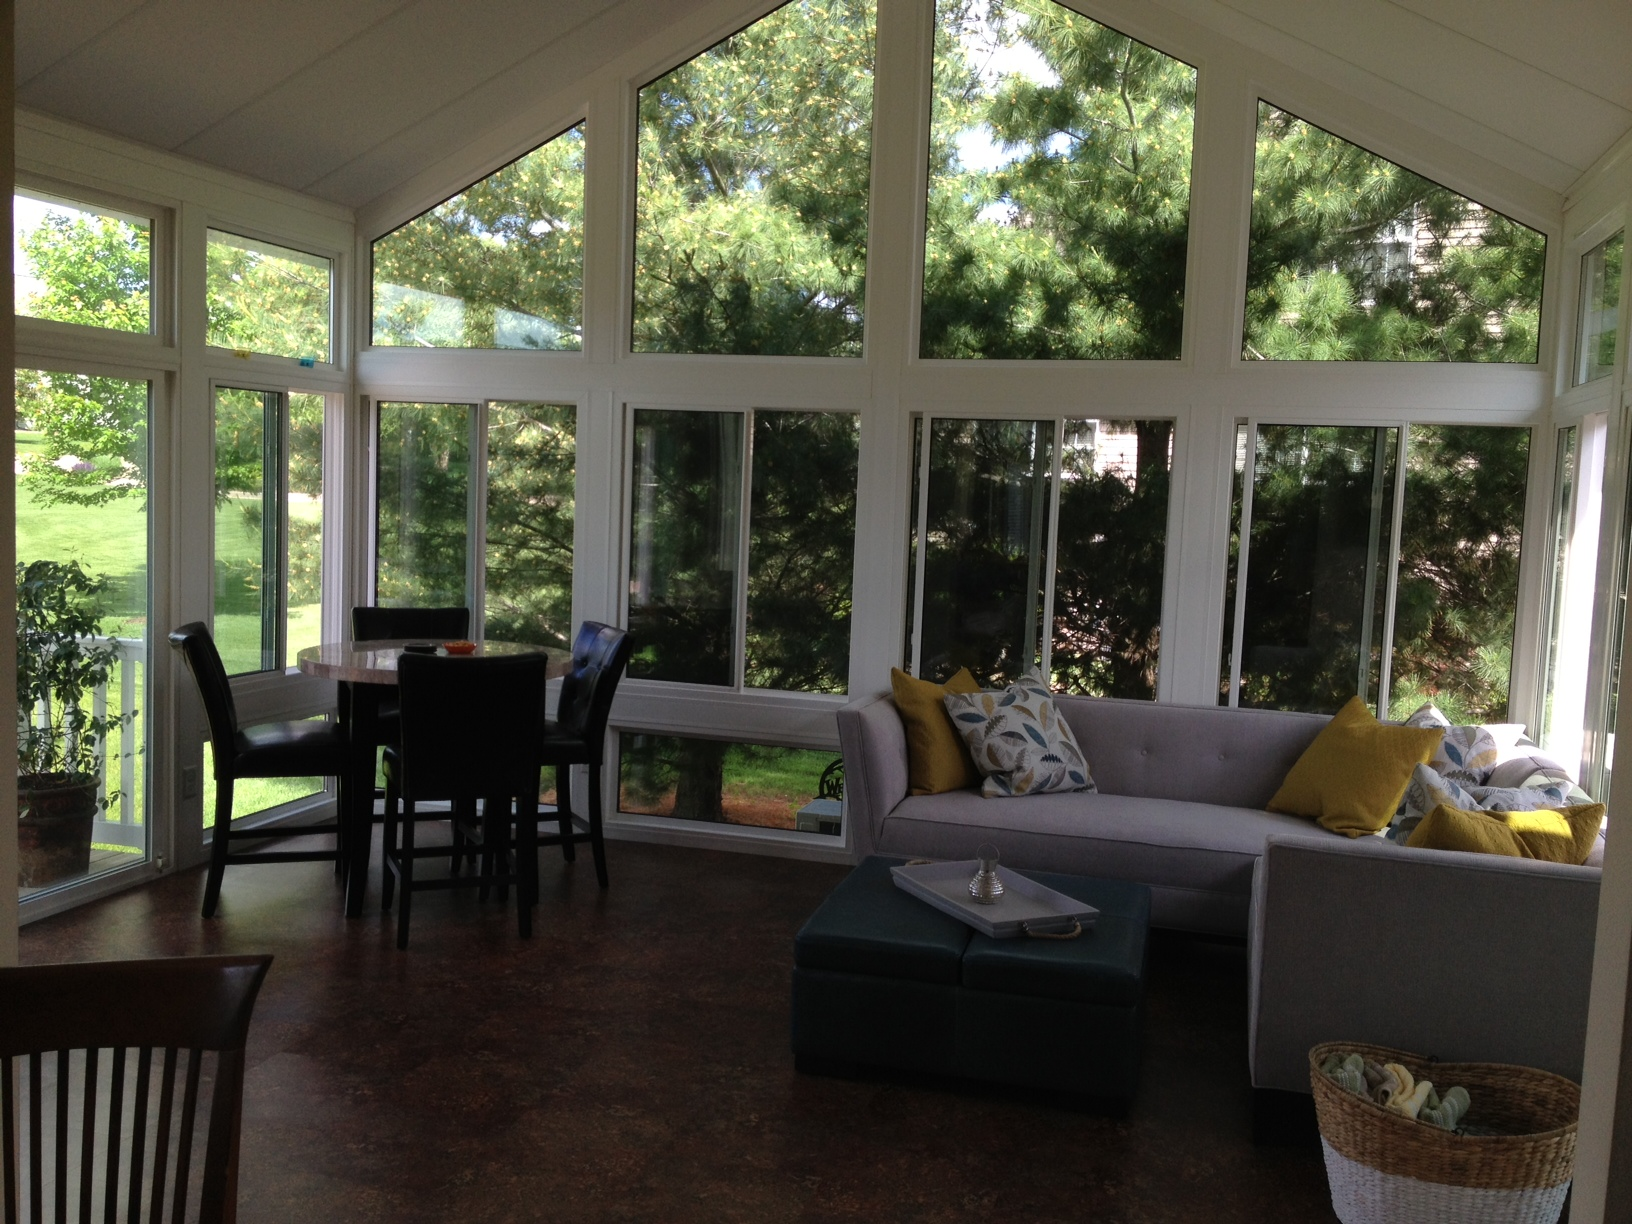 Sunroom Remodel - Home Improvement Contractor - Cedar Rapids, IA